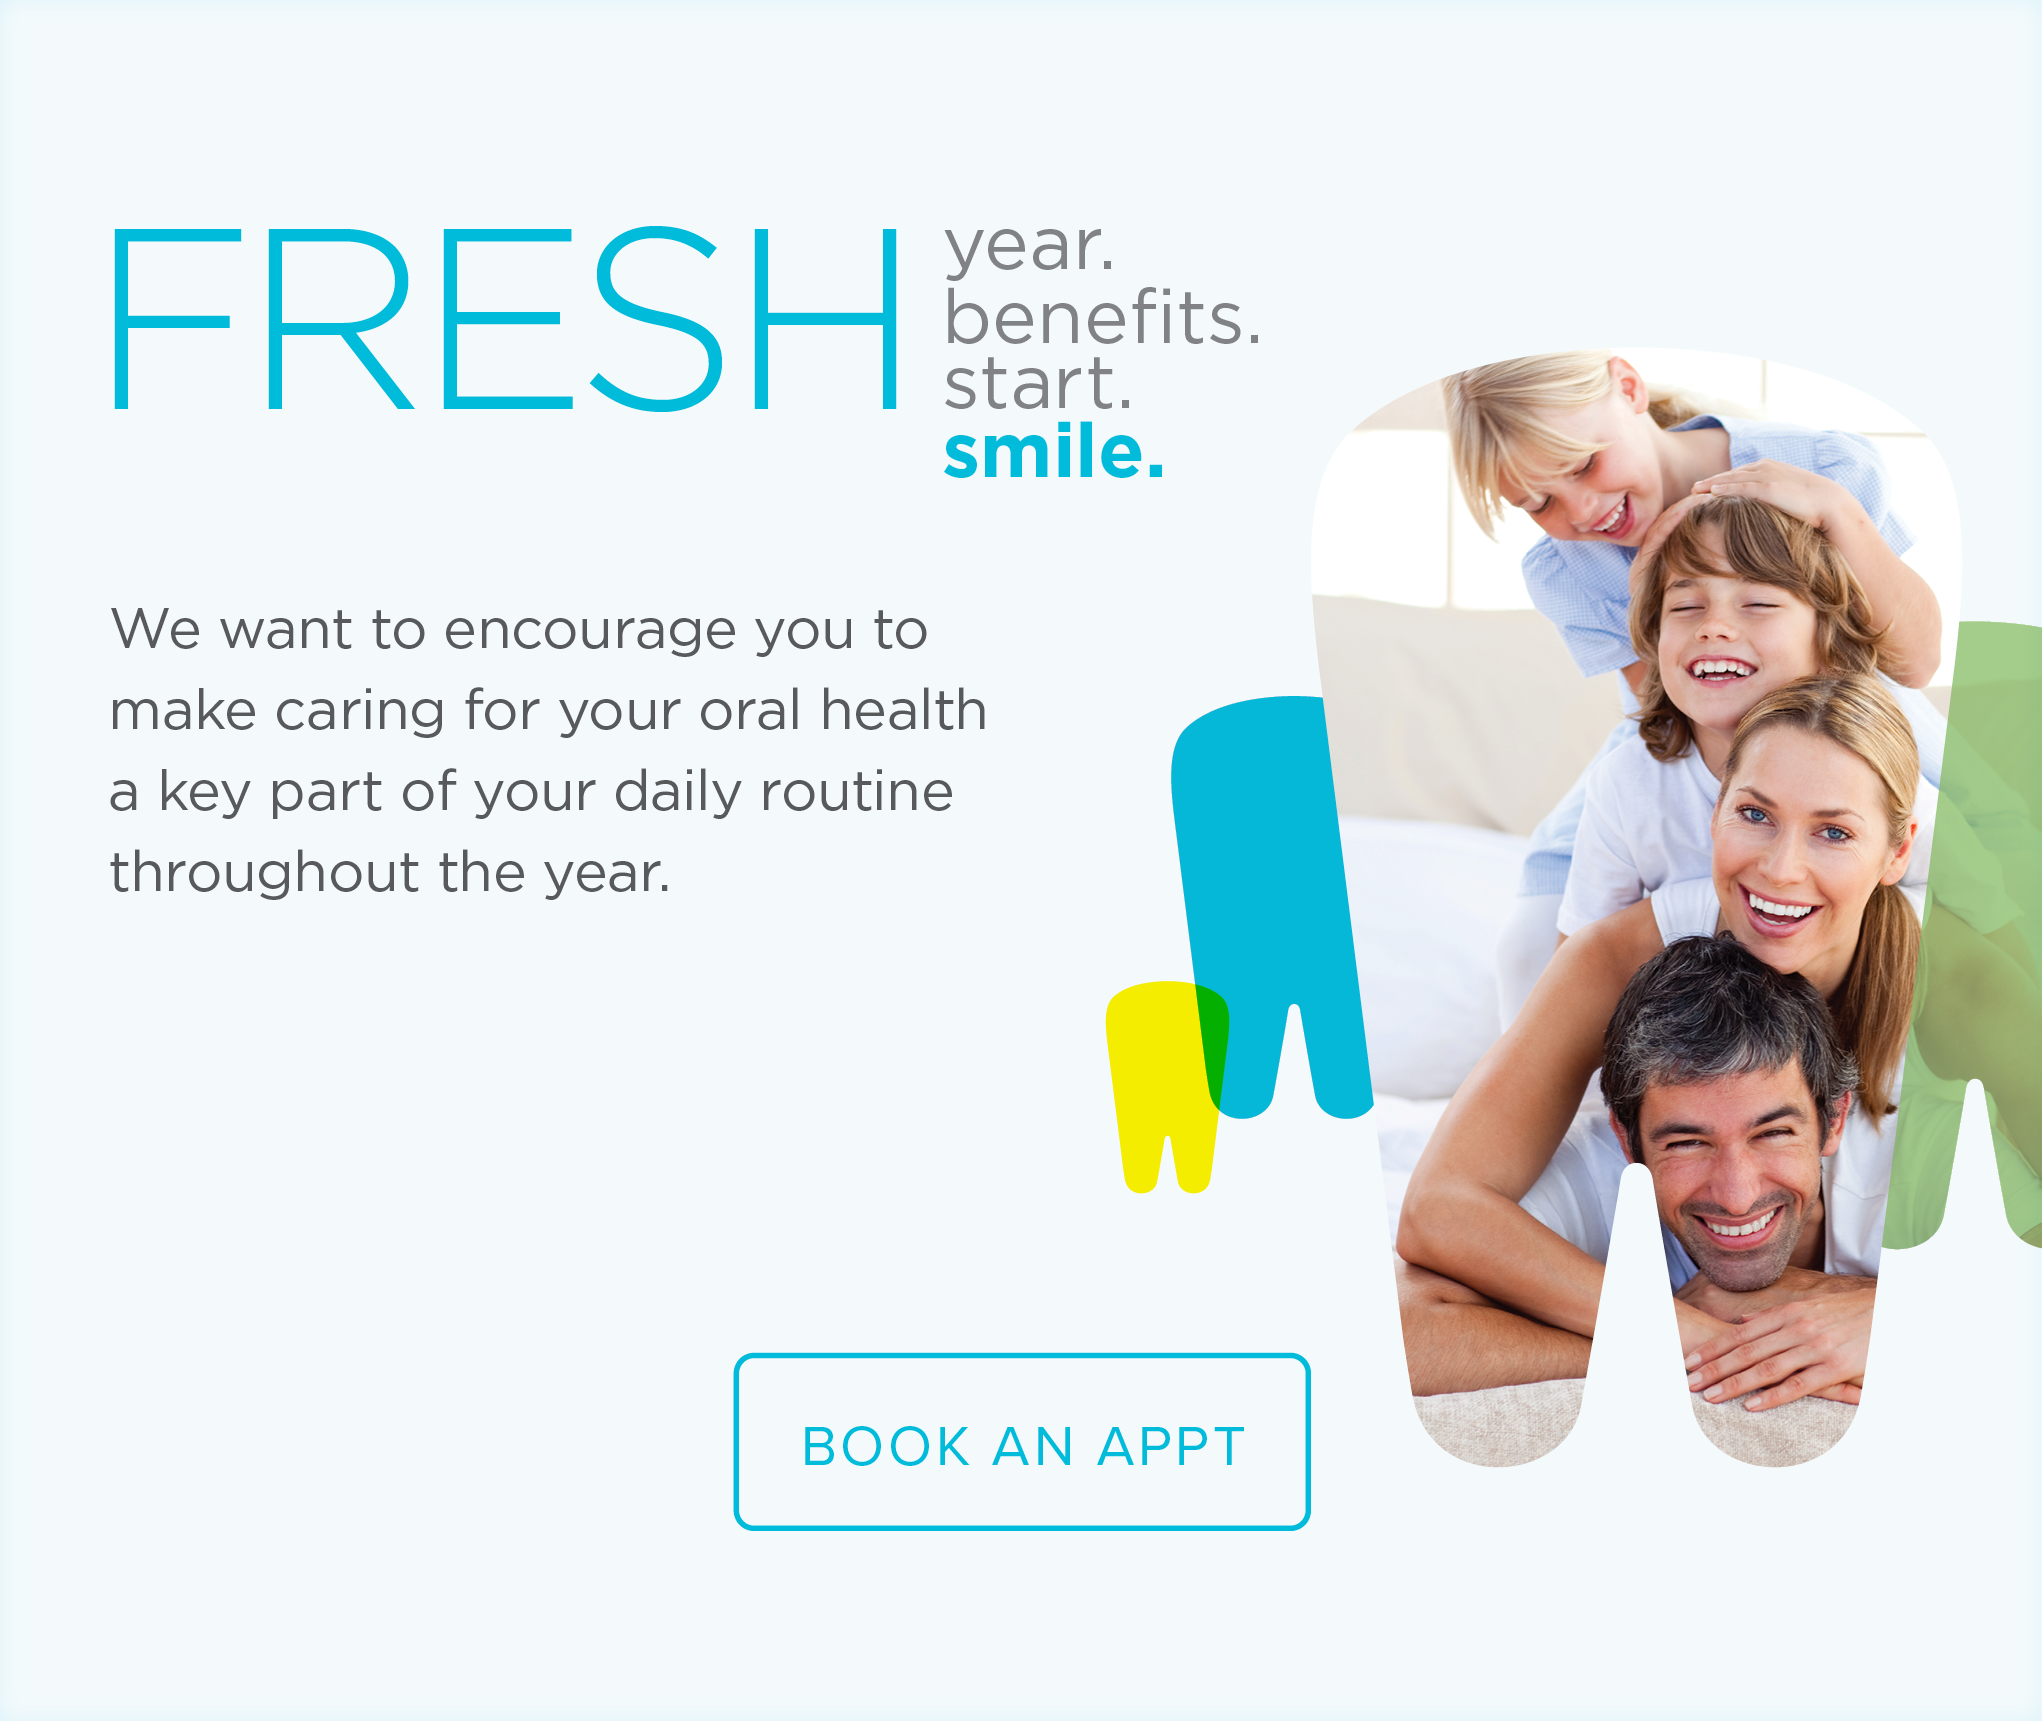 Richfield Dentistry - Make the Most of Your Benefits